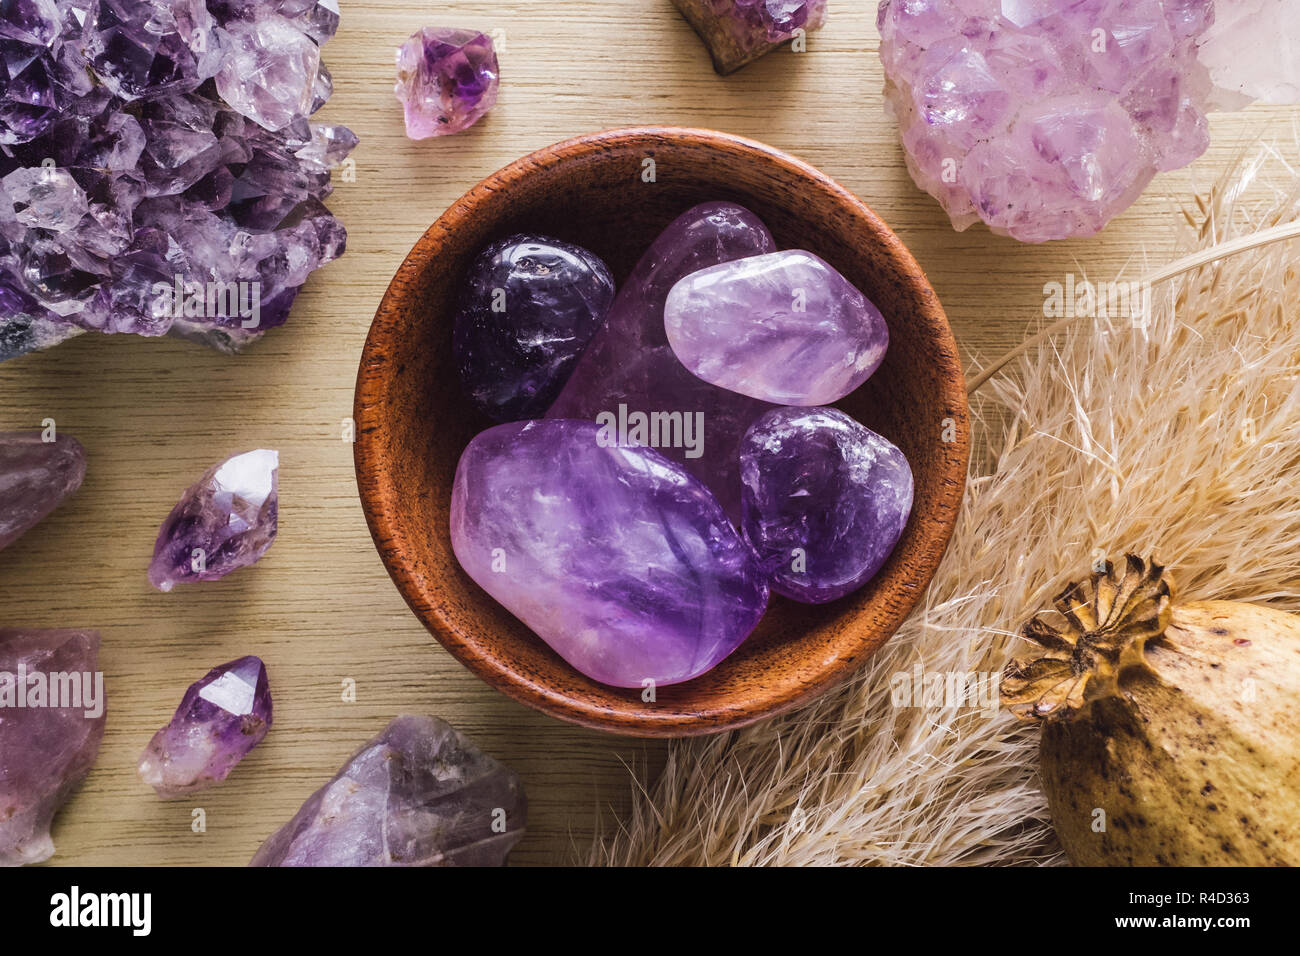 Teak Bowl of Amethyst with Amethyst Crystals and Dried Poppy Flower on Wood Table - Stock Image